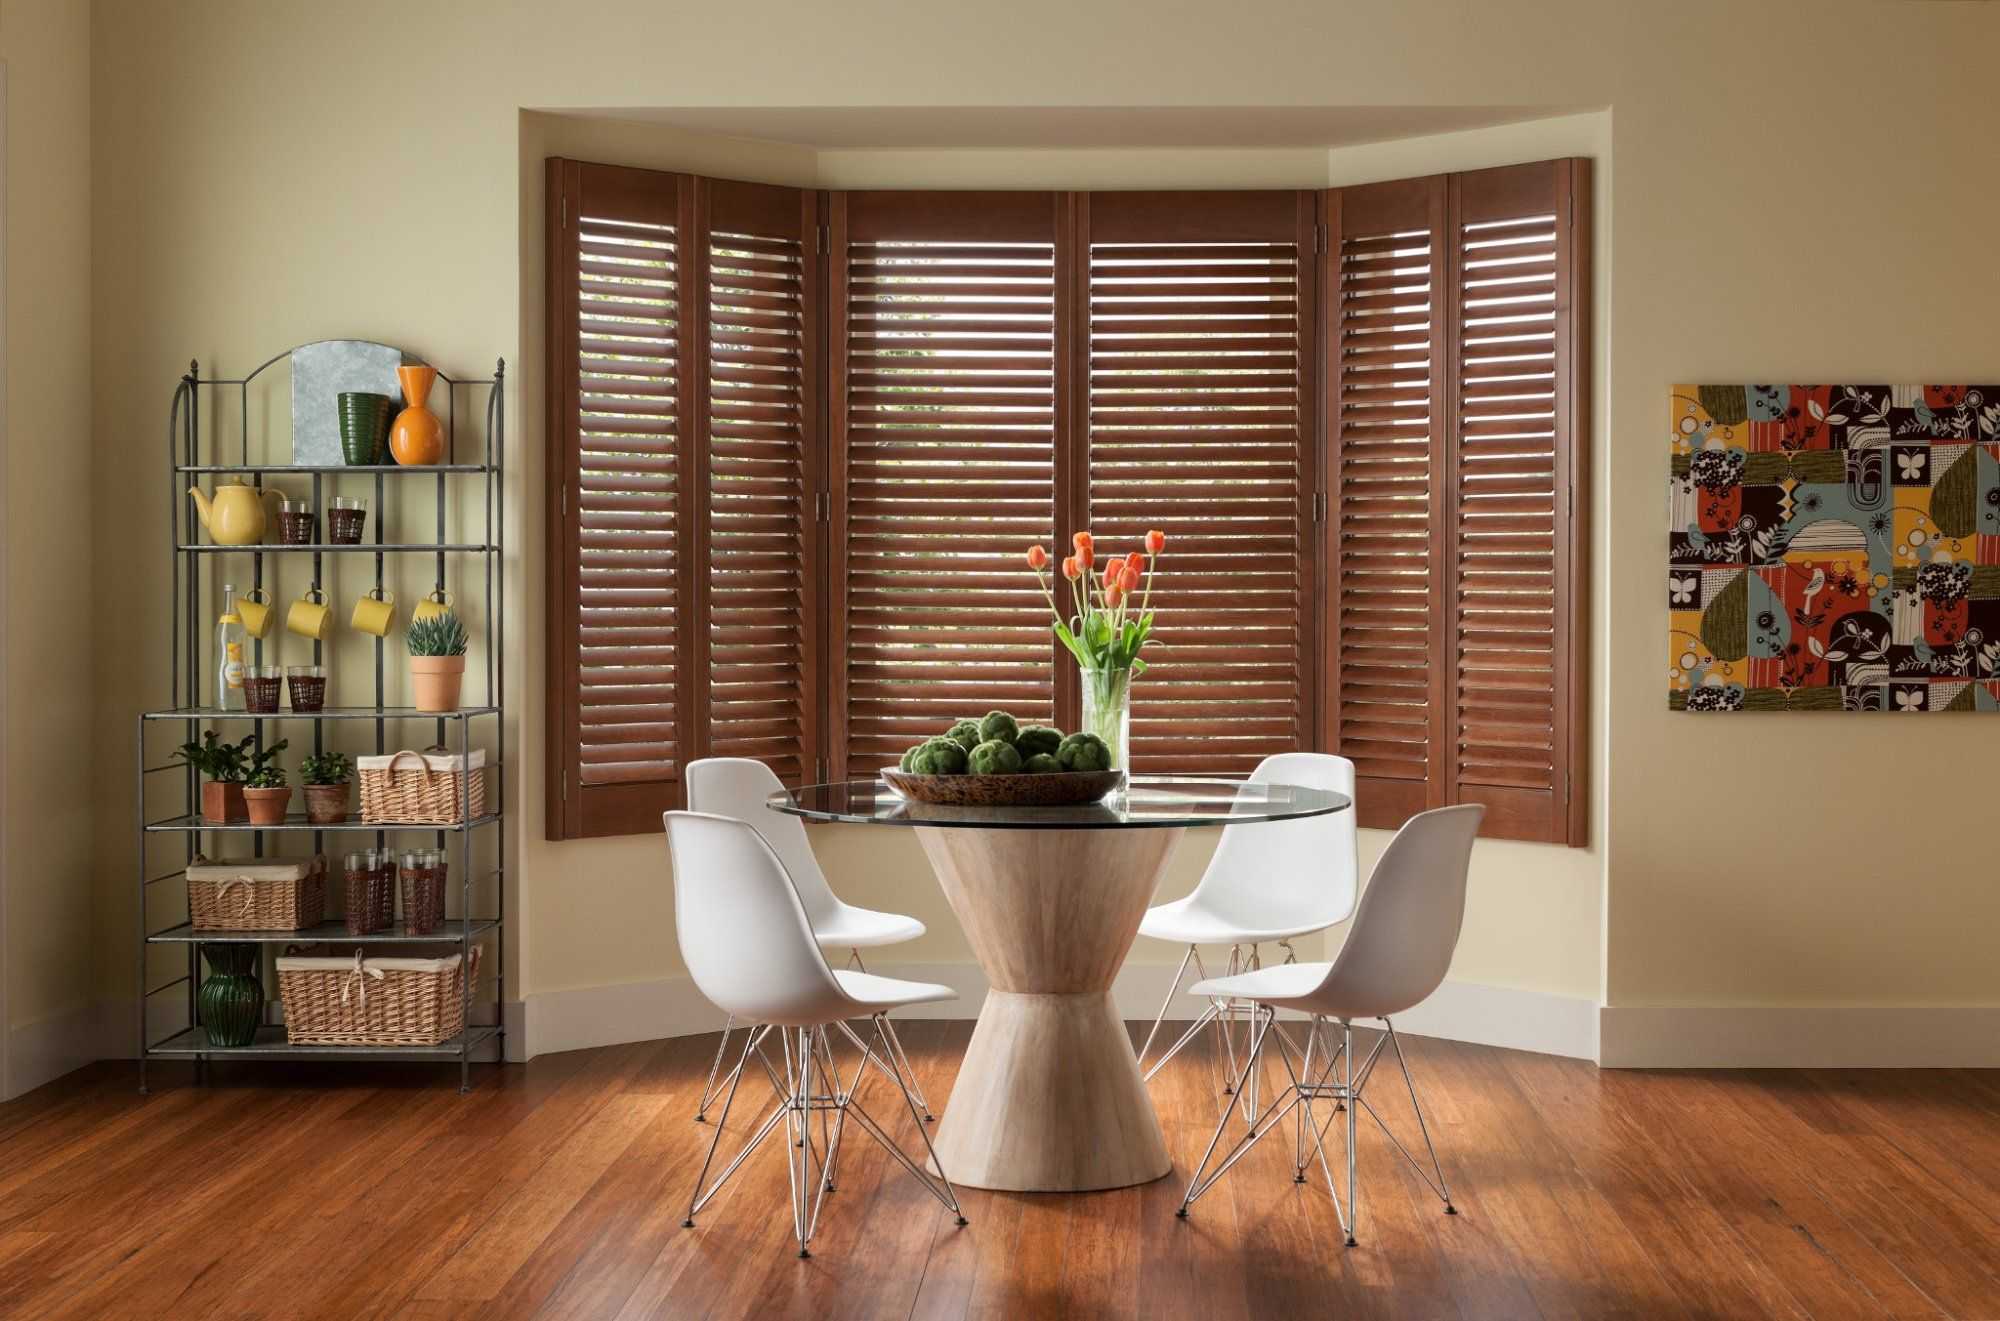 Don't these shutters just give off such cozy vibes? Love